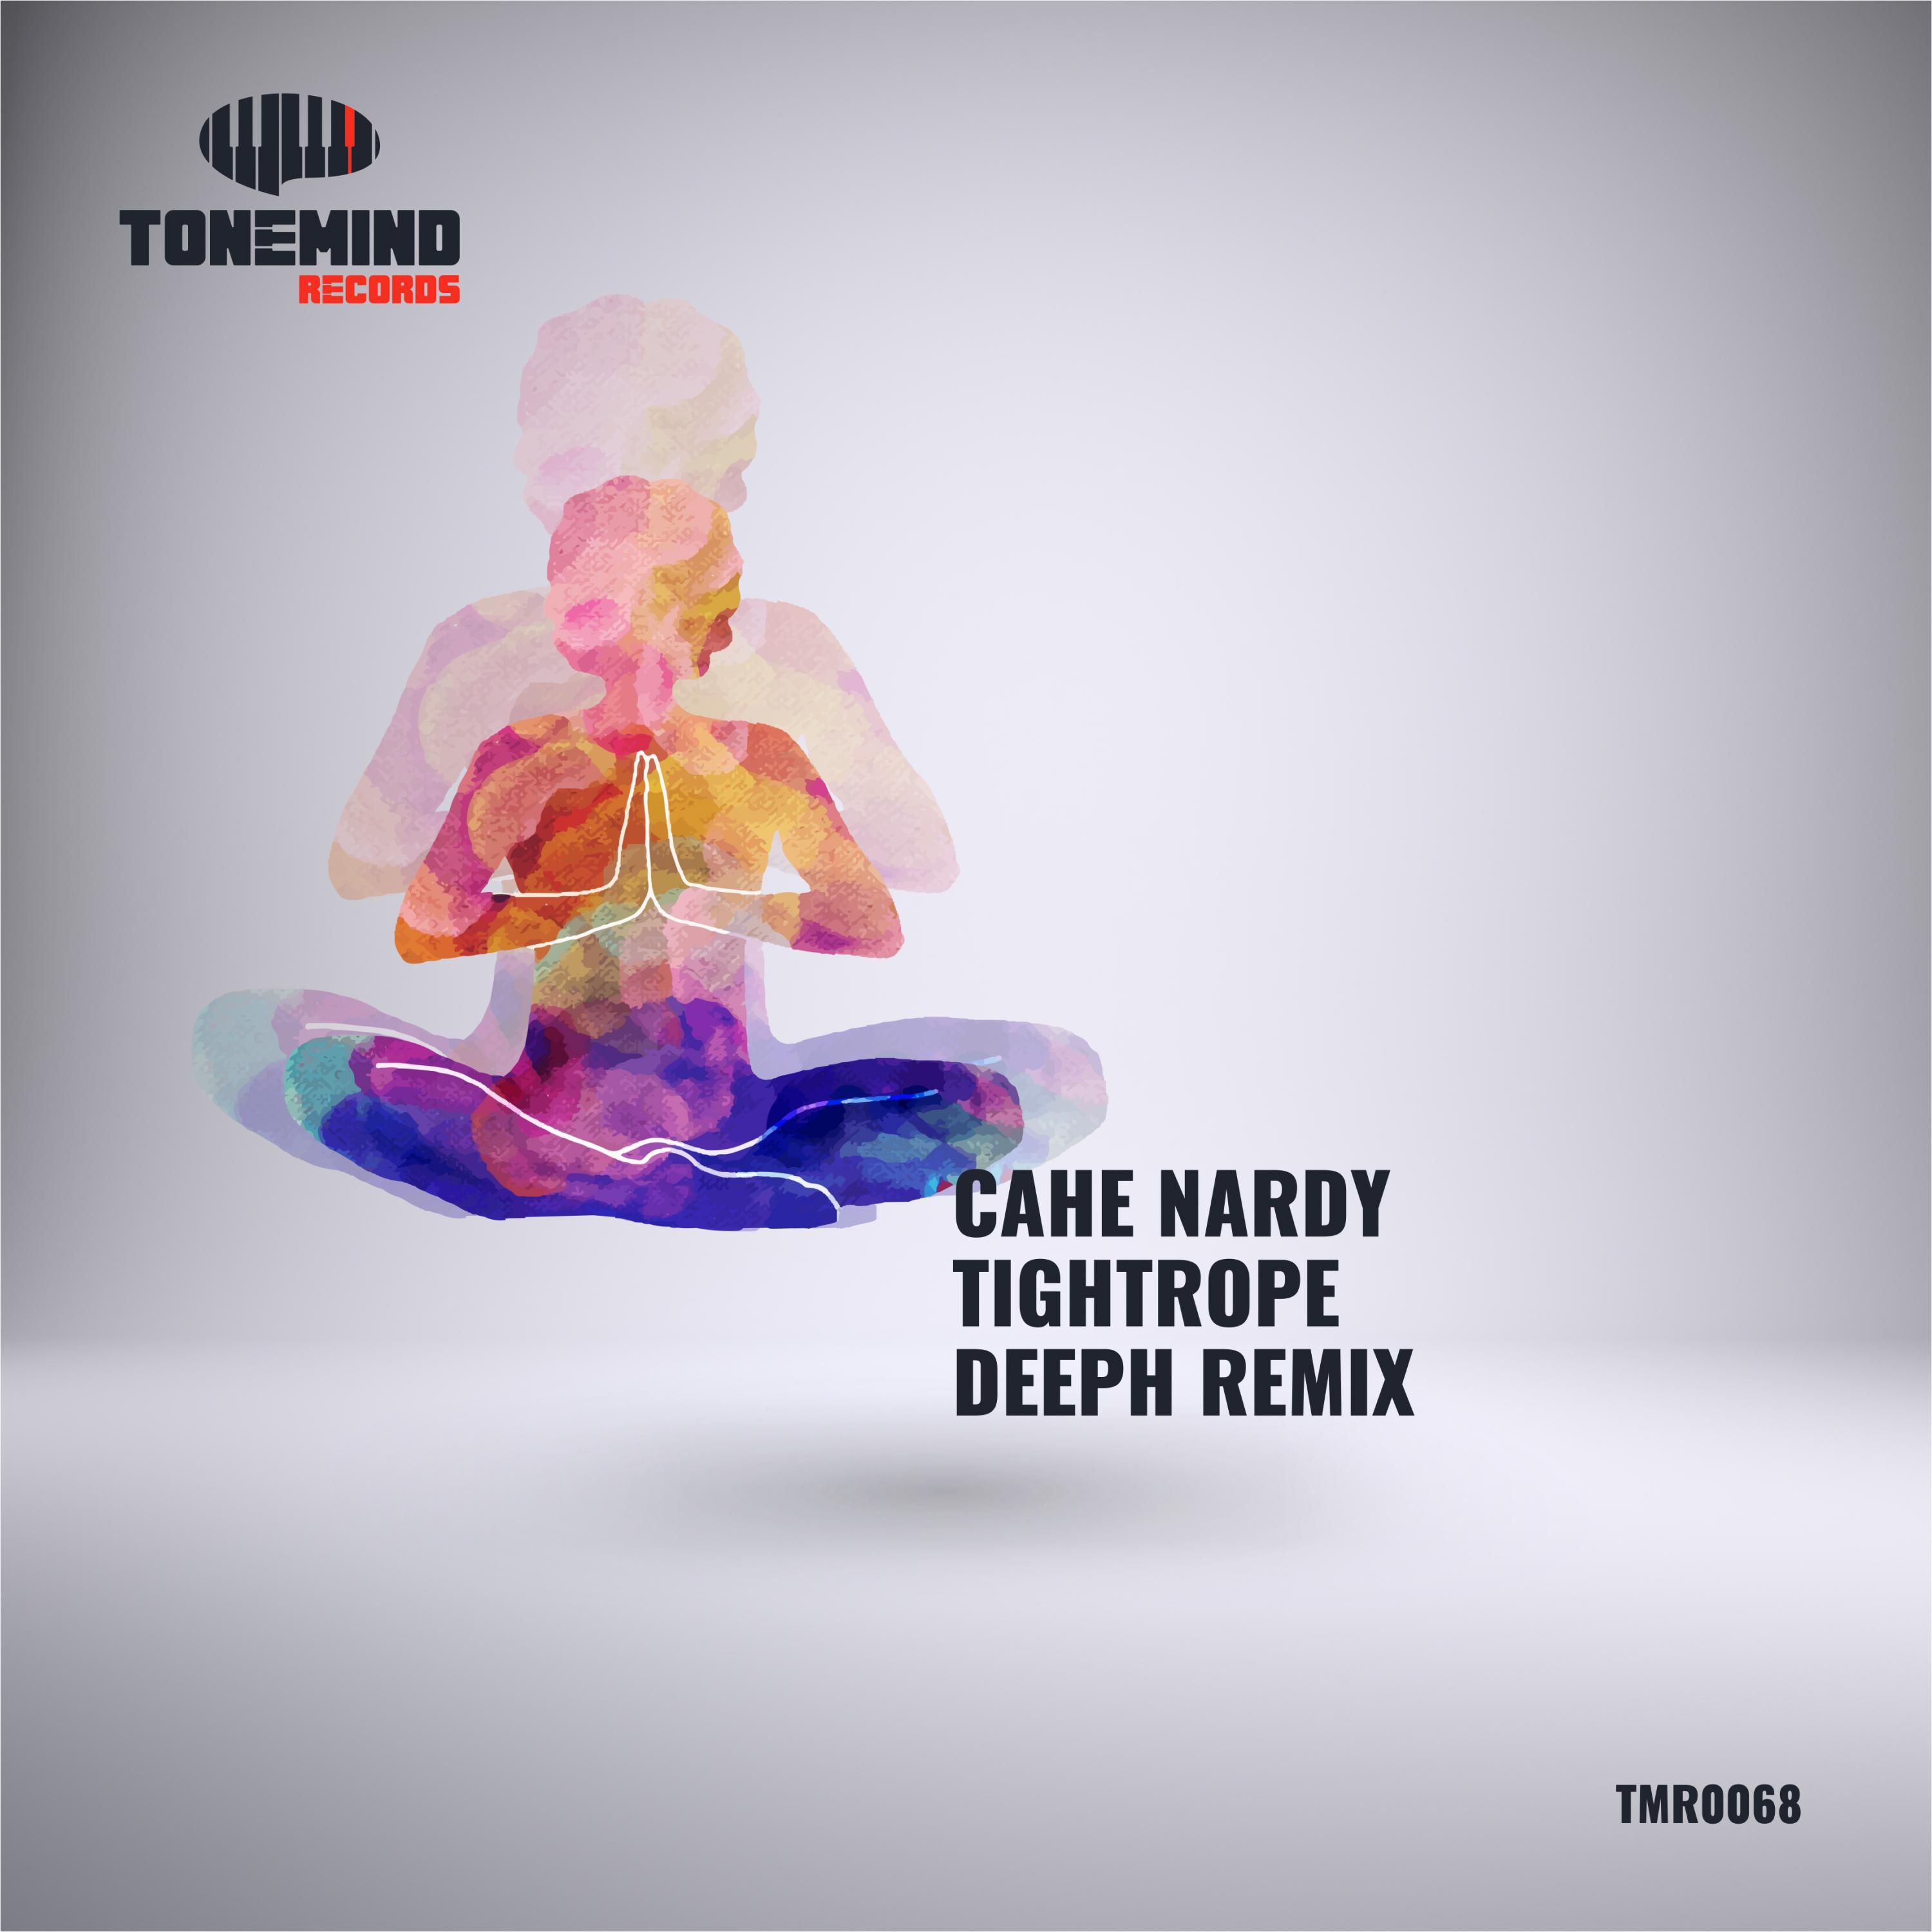 Cahe Nardy - Tightrope Deeph (Extended mix)